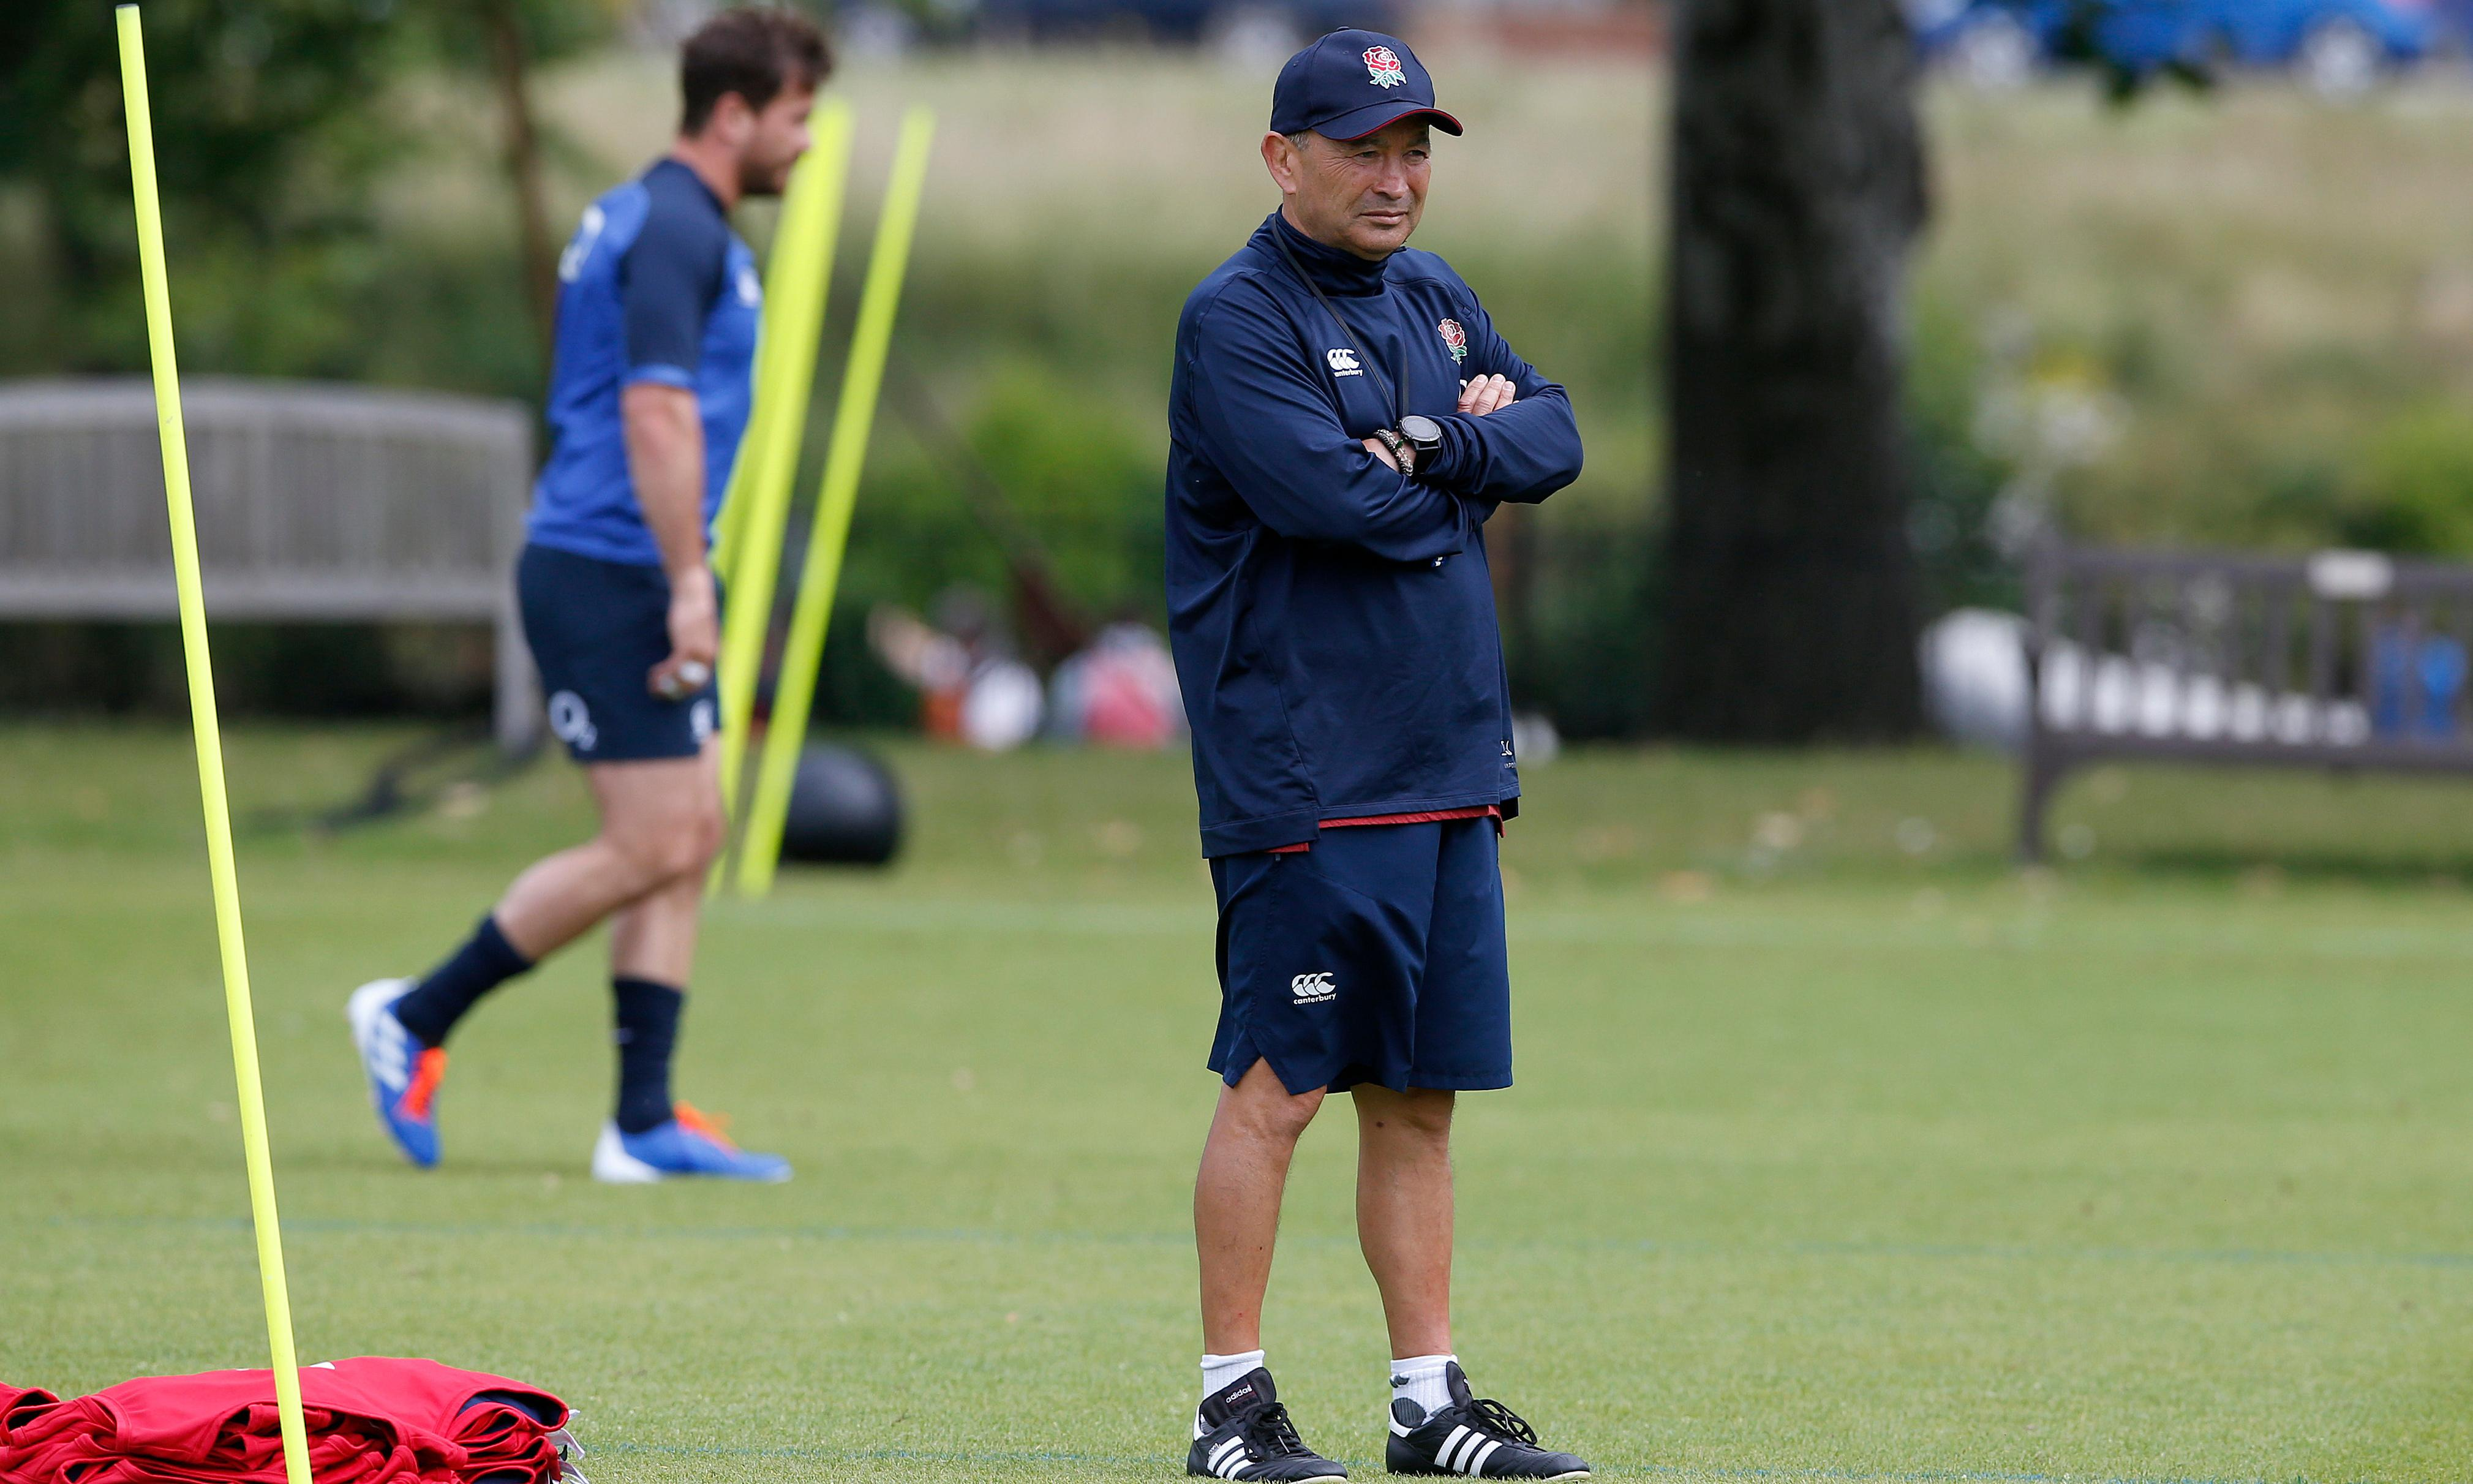 Danny Cipriani's World Cup hopes fade after another Eddie Jones snub